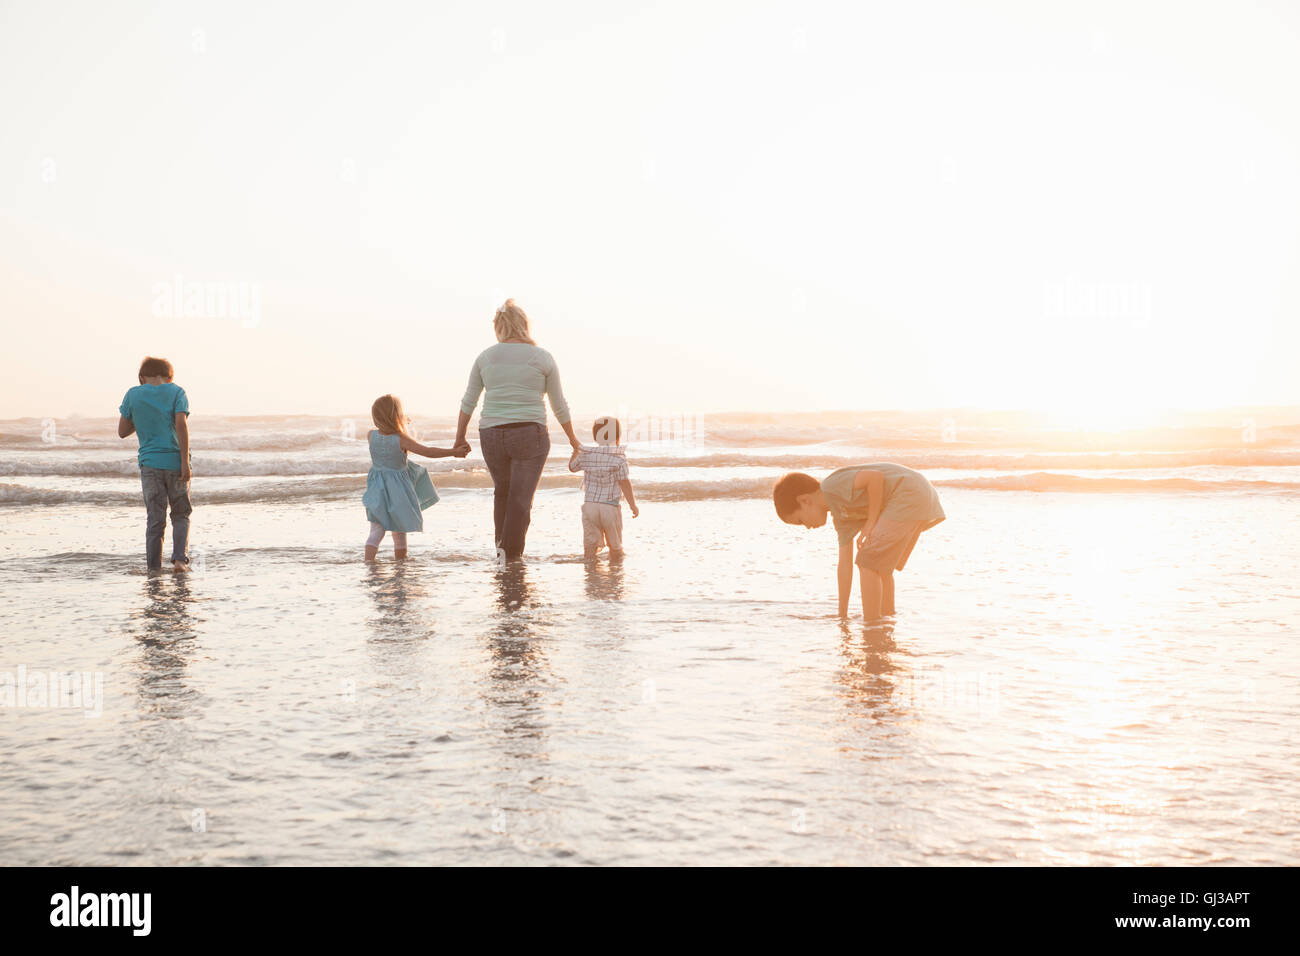 Famiglia holding hands paddling in ocean Immagini Stock